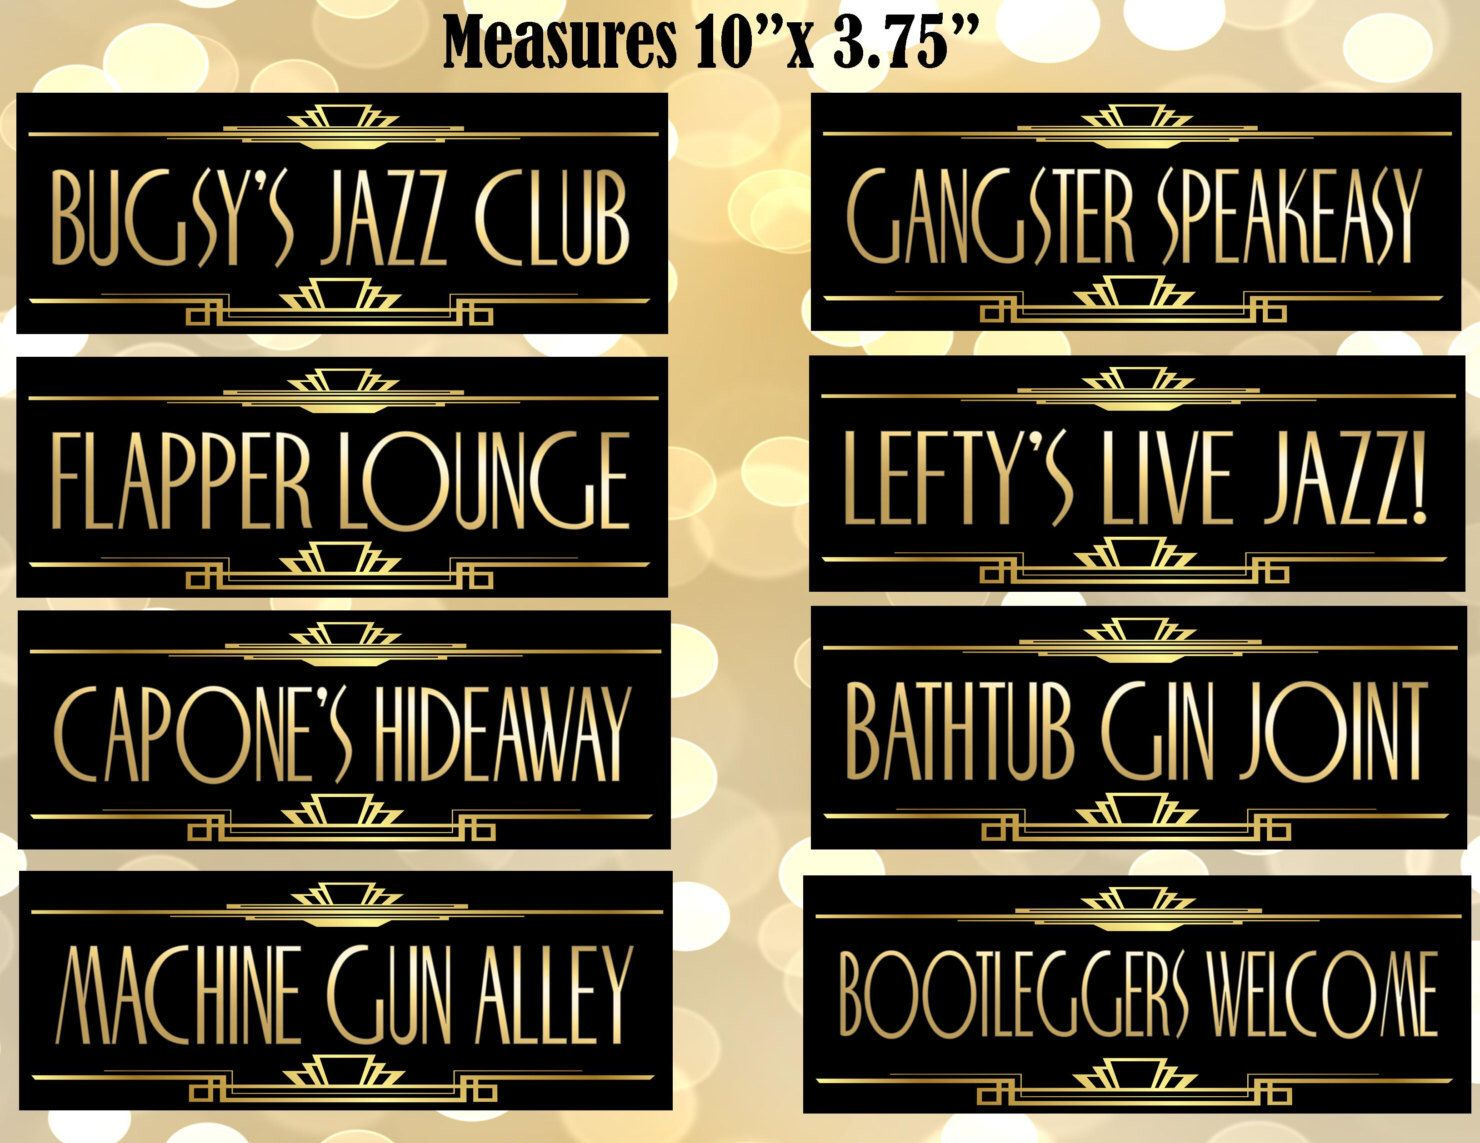 Art deco backdrop for photos wall decor party decoration 1920 s - Printable Gangster Street Sign Gatsby Party Decoration Roaring 20s Art Deco Wedding Sign Wedding Decor Dollfaces Old Sport Flapper Party1920s